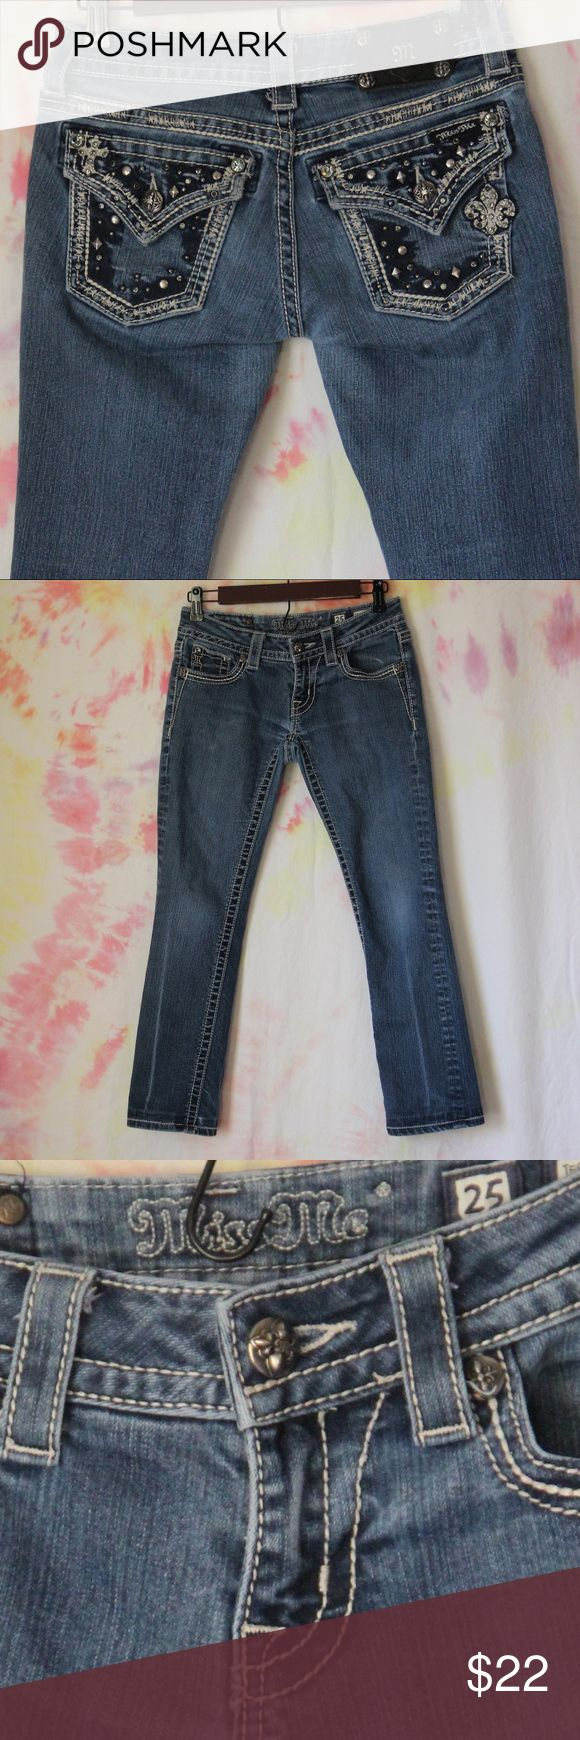 """Miss Me Brand Capri Jeans. Size 25 Size 25 Miss Me Brand.  Capri Style Inseam is 26""""  Great Condition, no rips, stains, or tears. The only flaw I could find can be seen in the photos. there is a line where the jeans have been folded for so long that look lighter than the rest of the jean. But otherwise, like new Miss Me Pants Capris"""